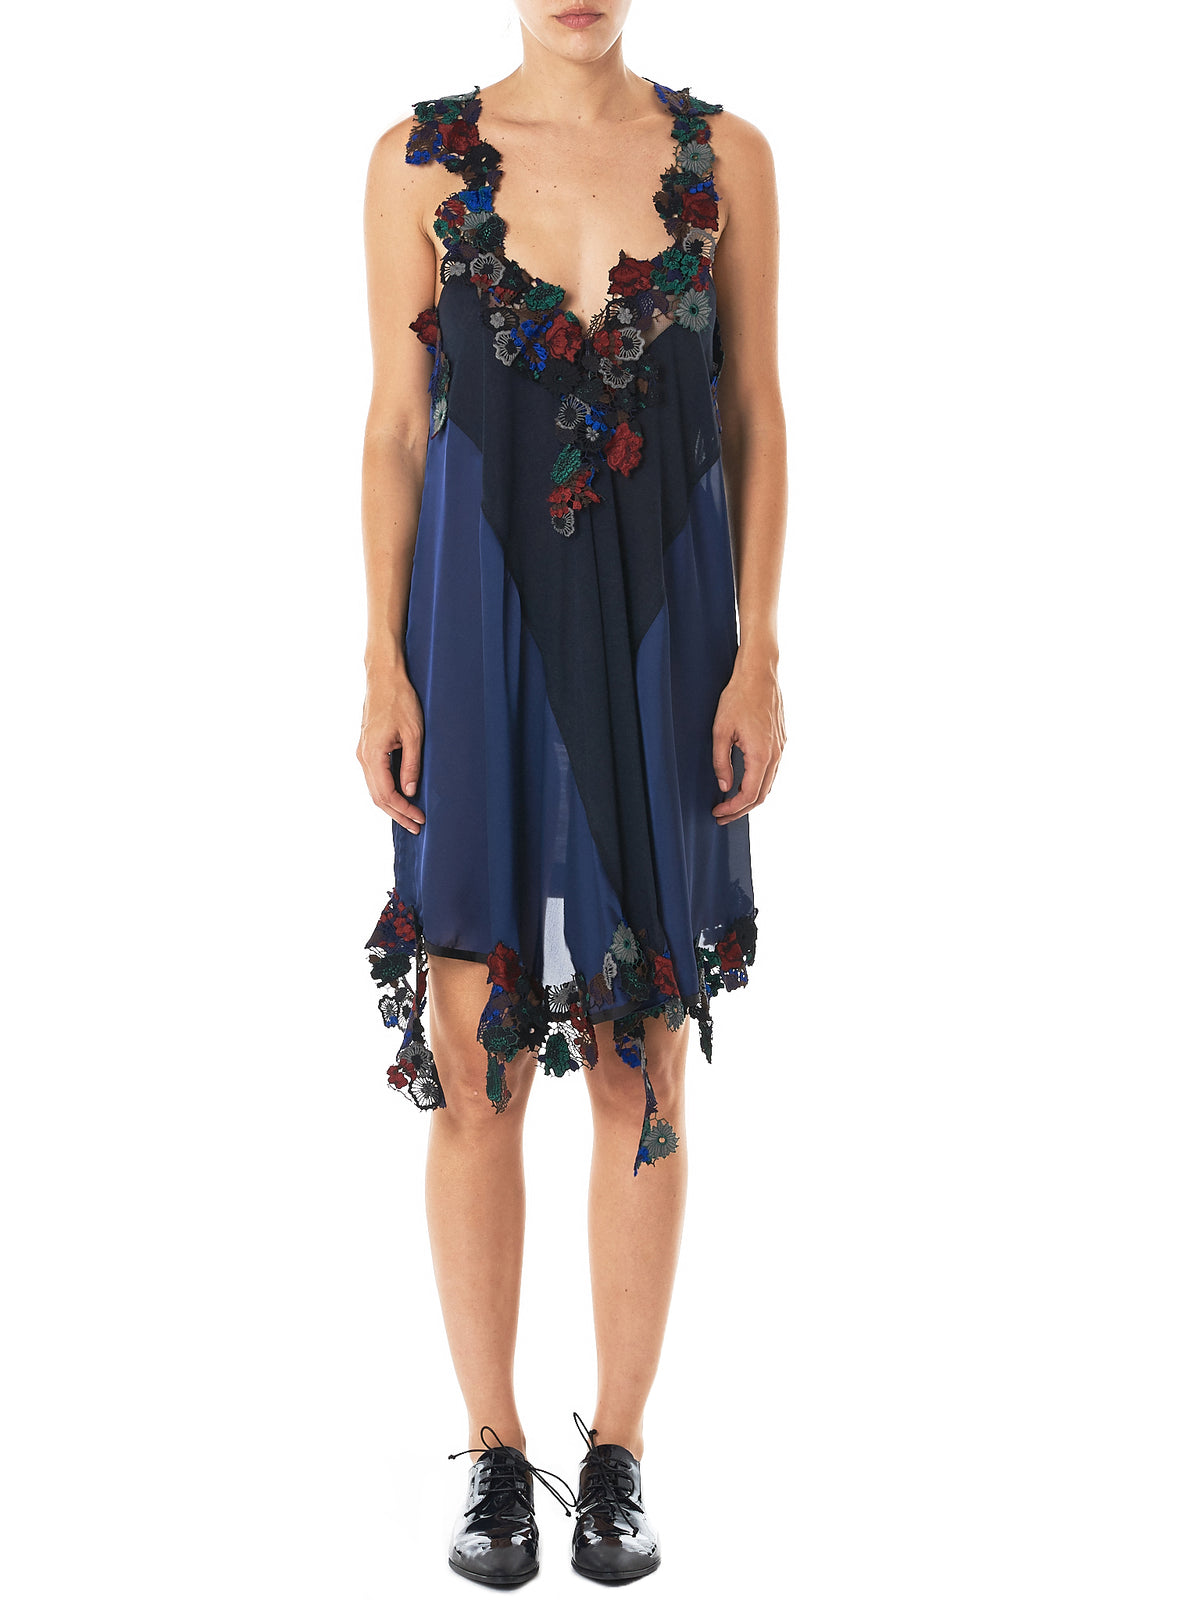 Floral Appliqué Dress (17-03494-D-NAVY-MULTI)